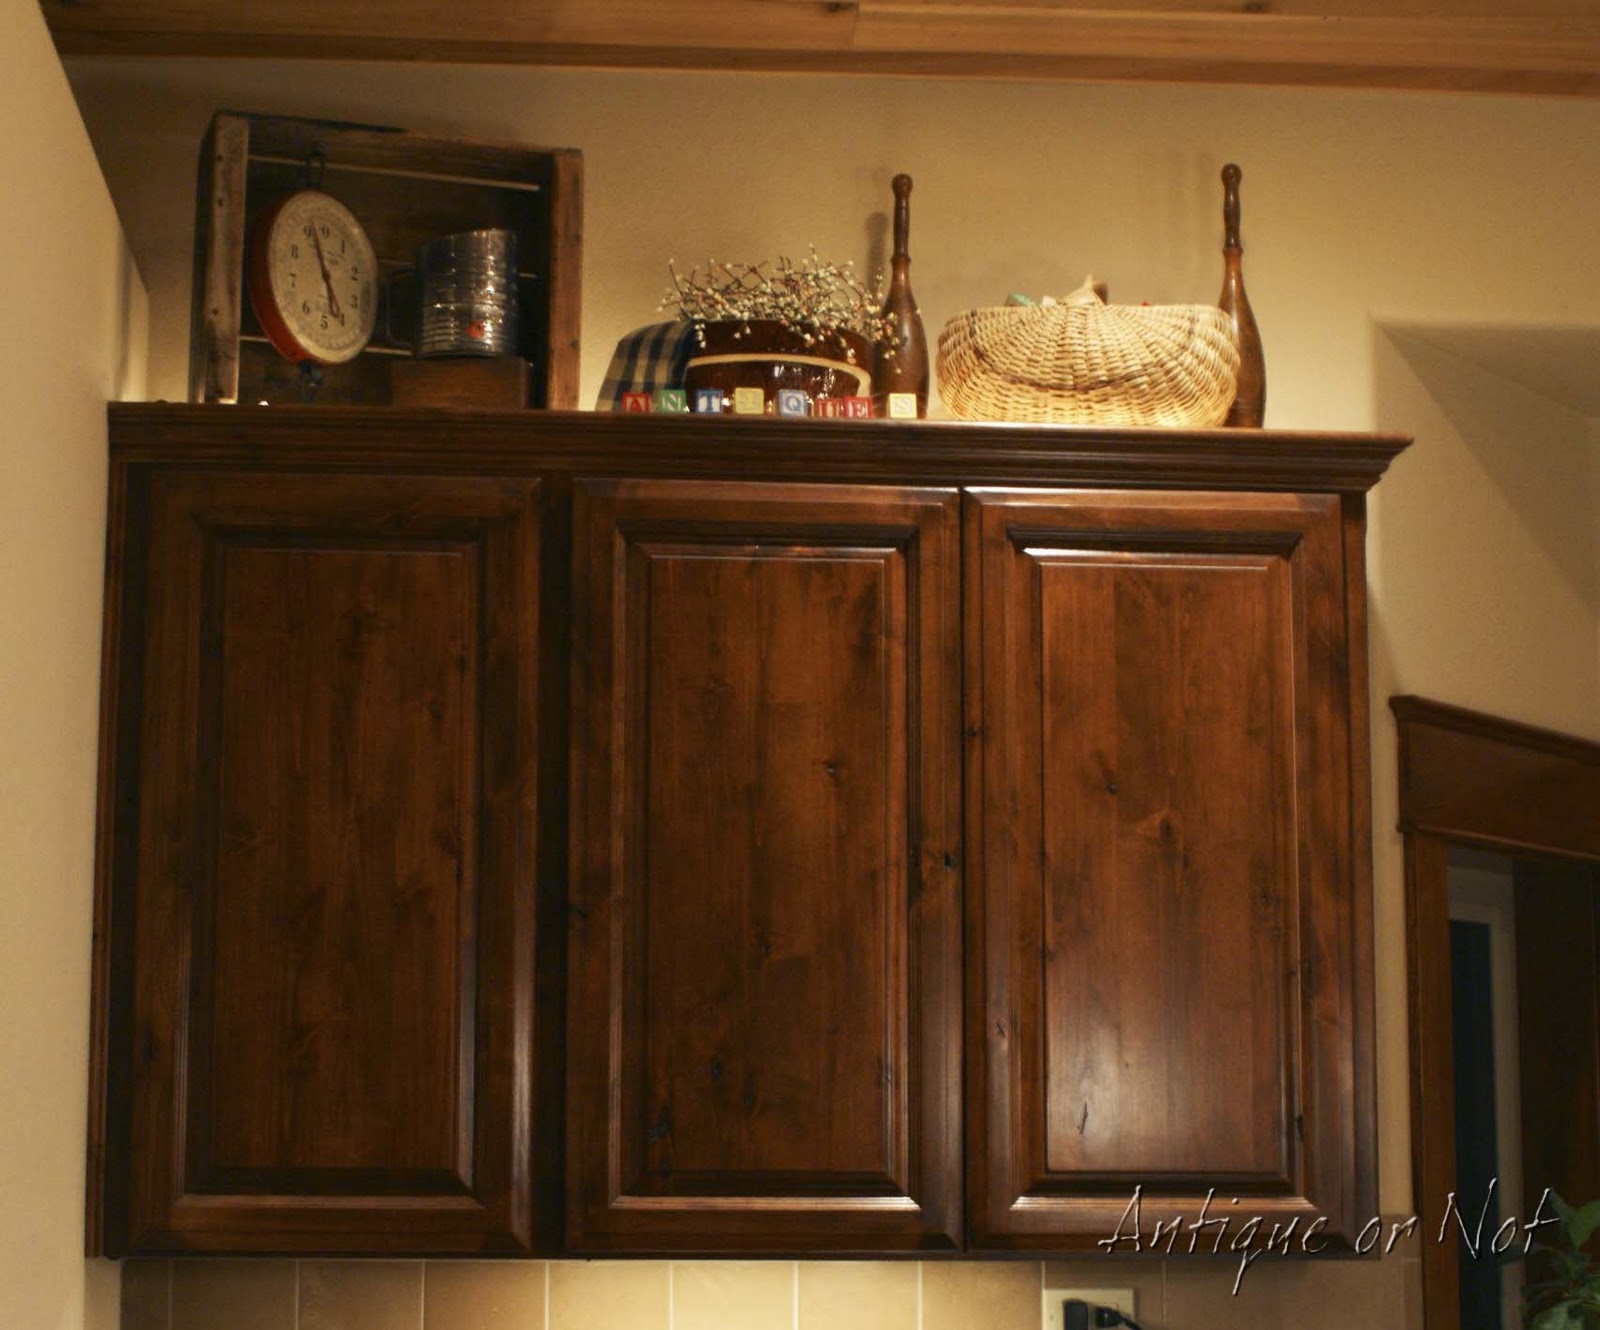 Antique or Not Decorating Your Cabinets